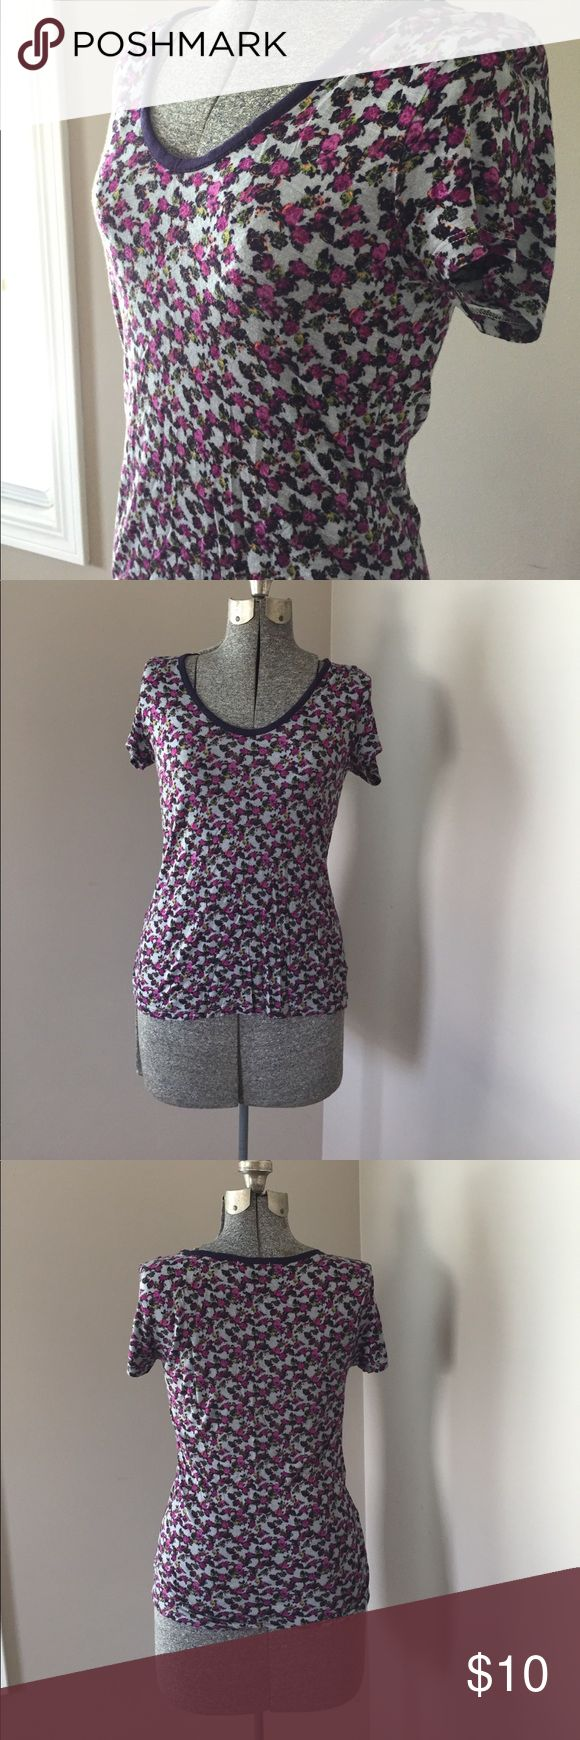 Gap floral tee shirt Gap floral T-shirt. Size small. Country blue with hot pink purple green and navy blue flowers. 100% rayon, stretchy and comfortable fabric.  In very good condition. GAP Tops Tees - Short Sleeve